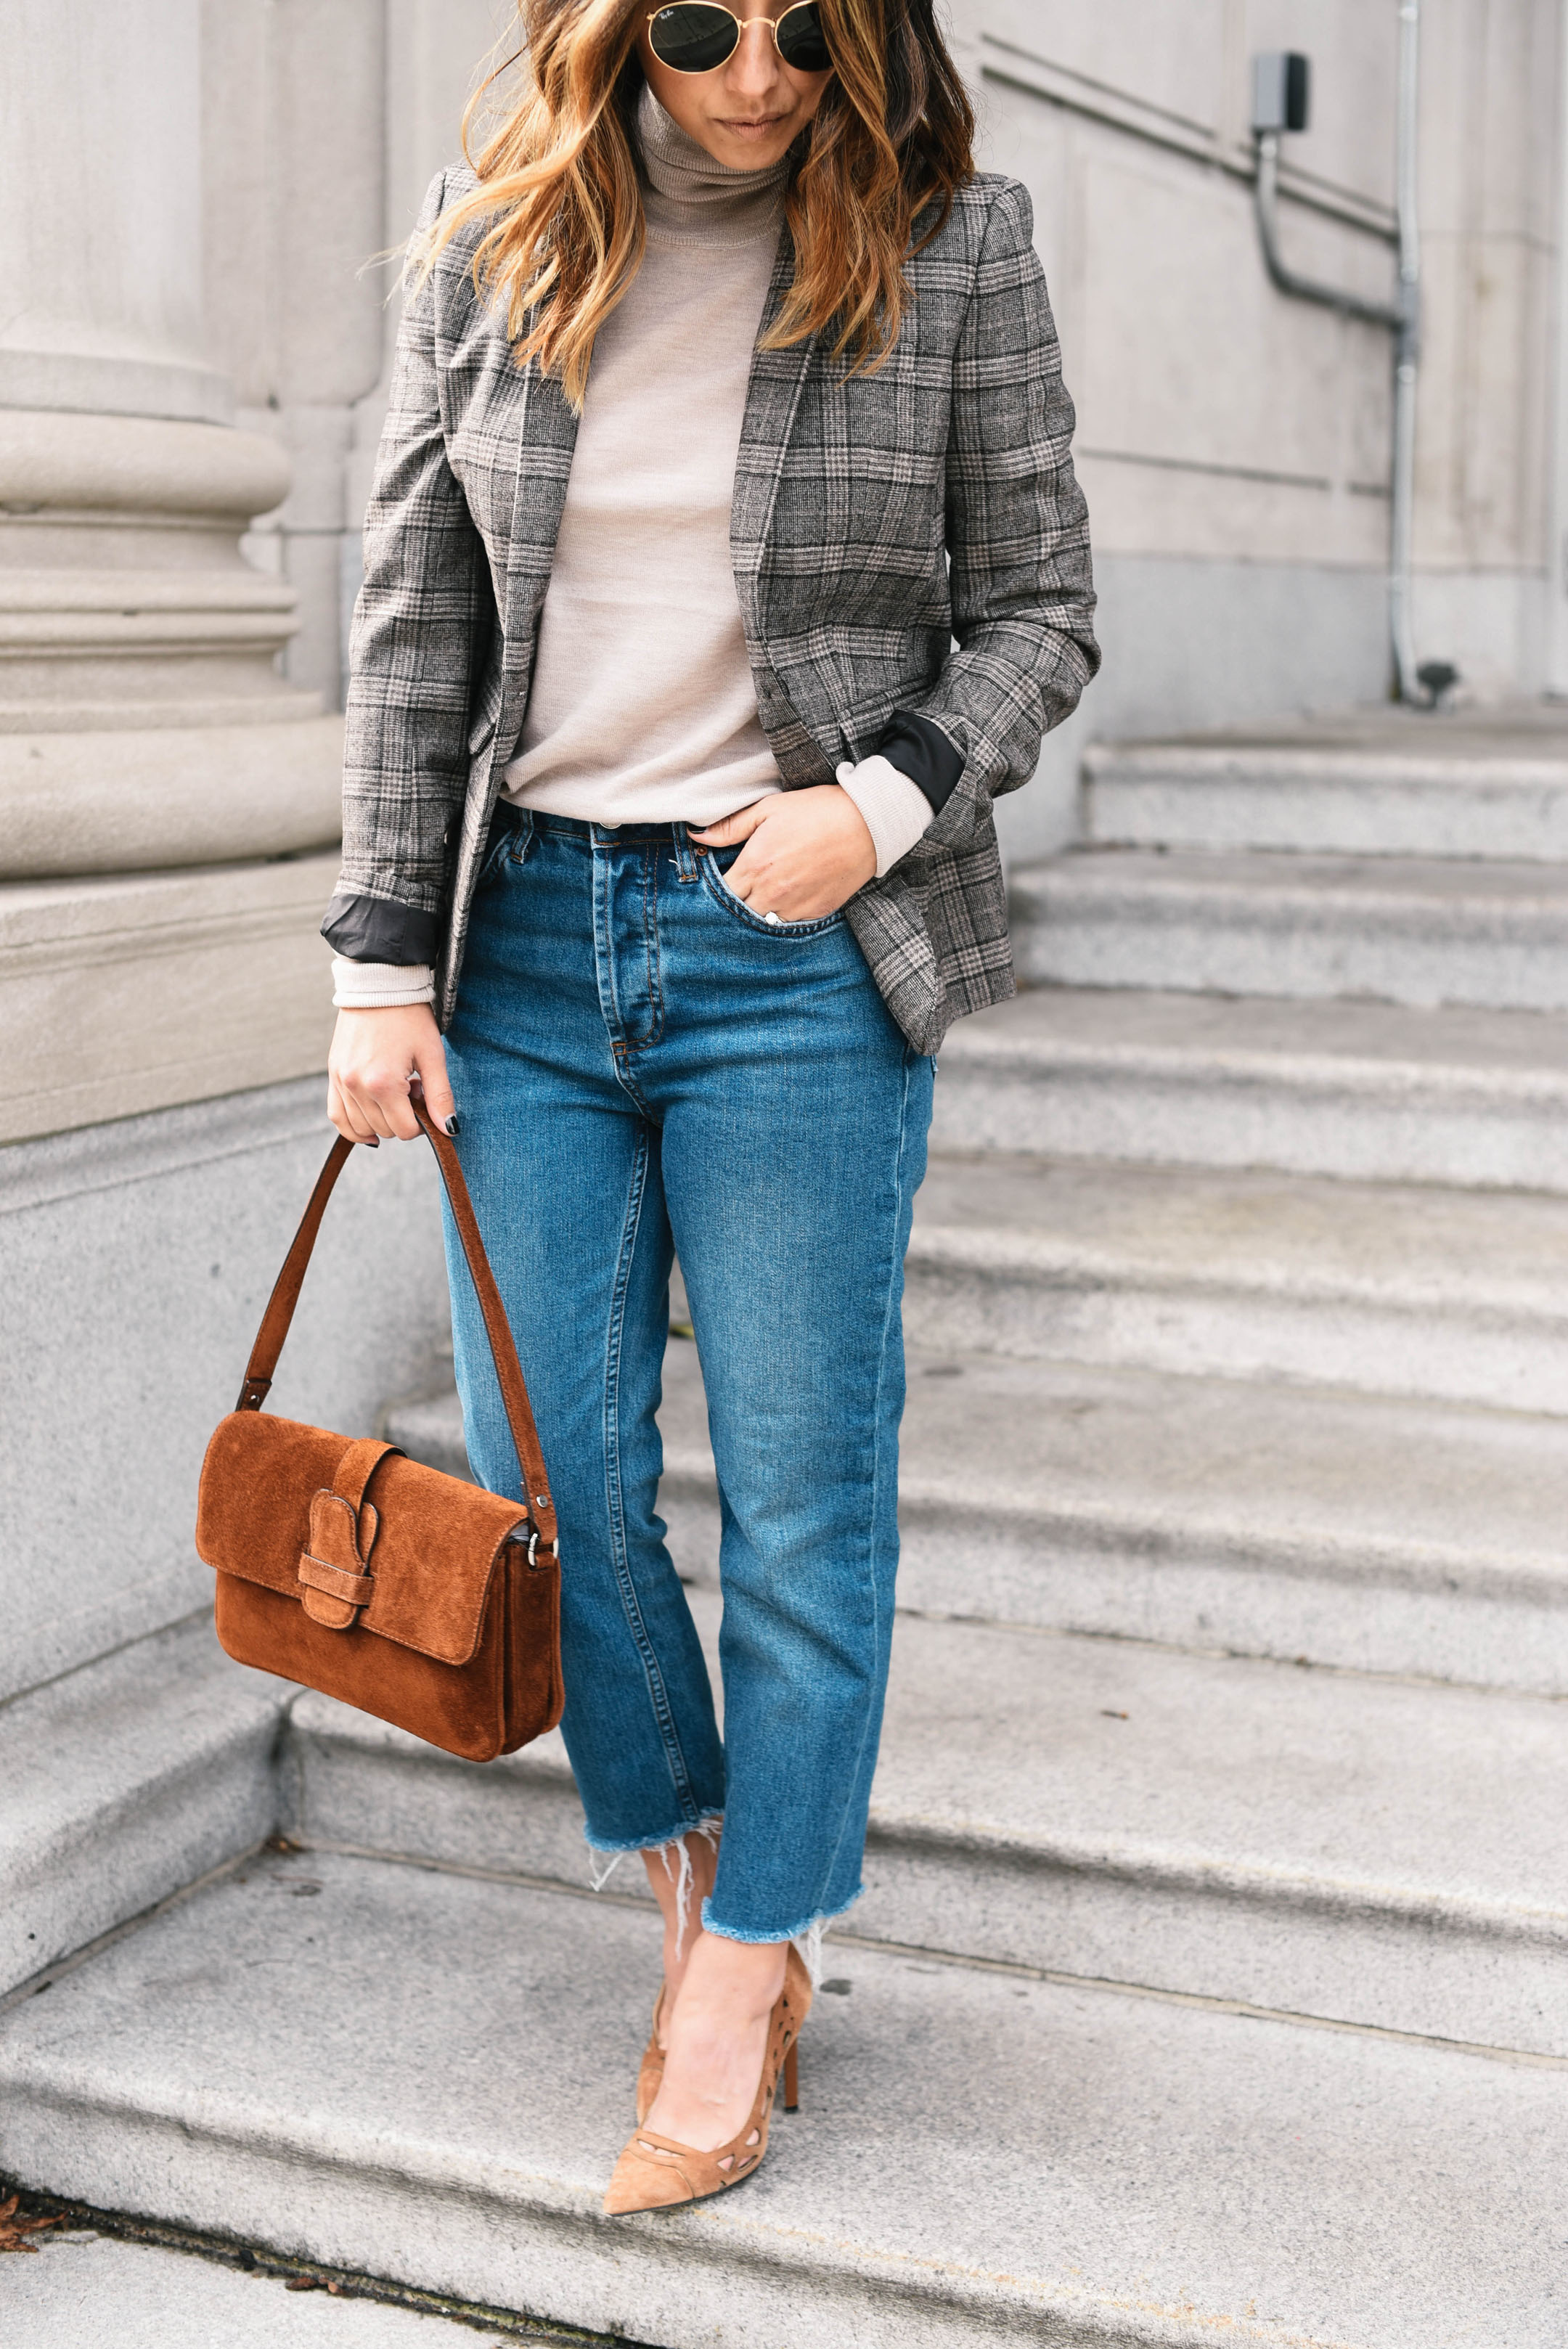 30 Fall Outfits to Copy - Crystalin Marie